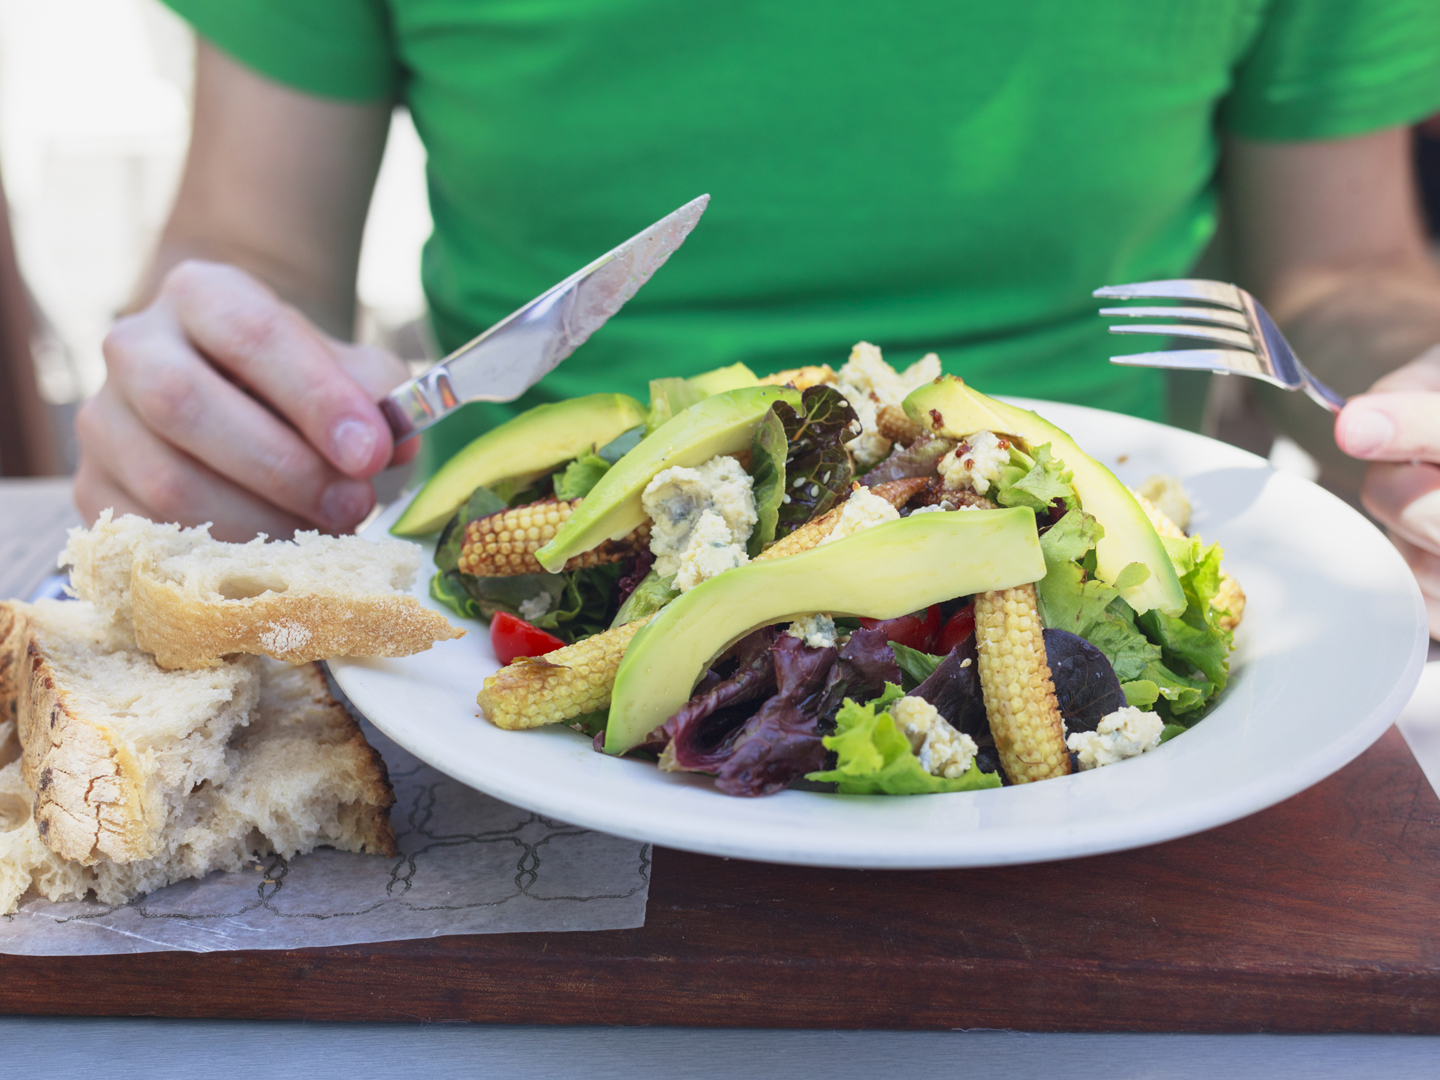 Food To Eat To Increase Male Fertility